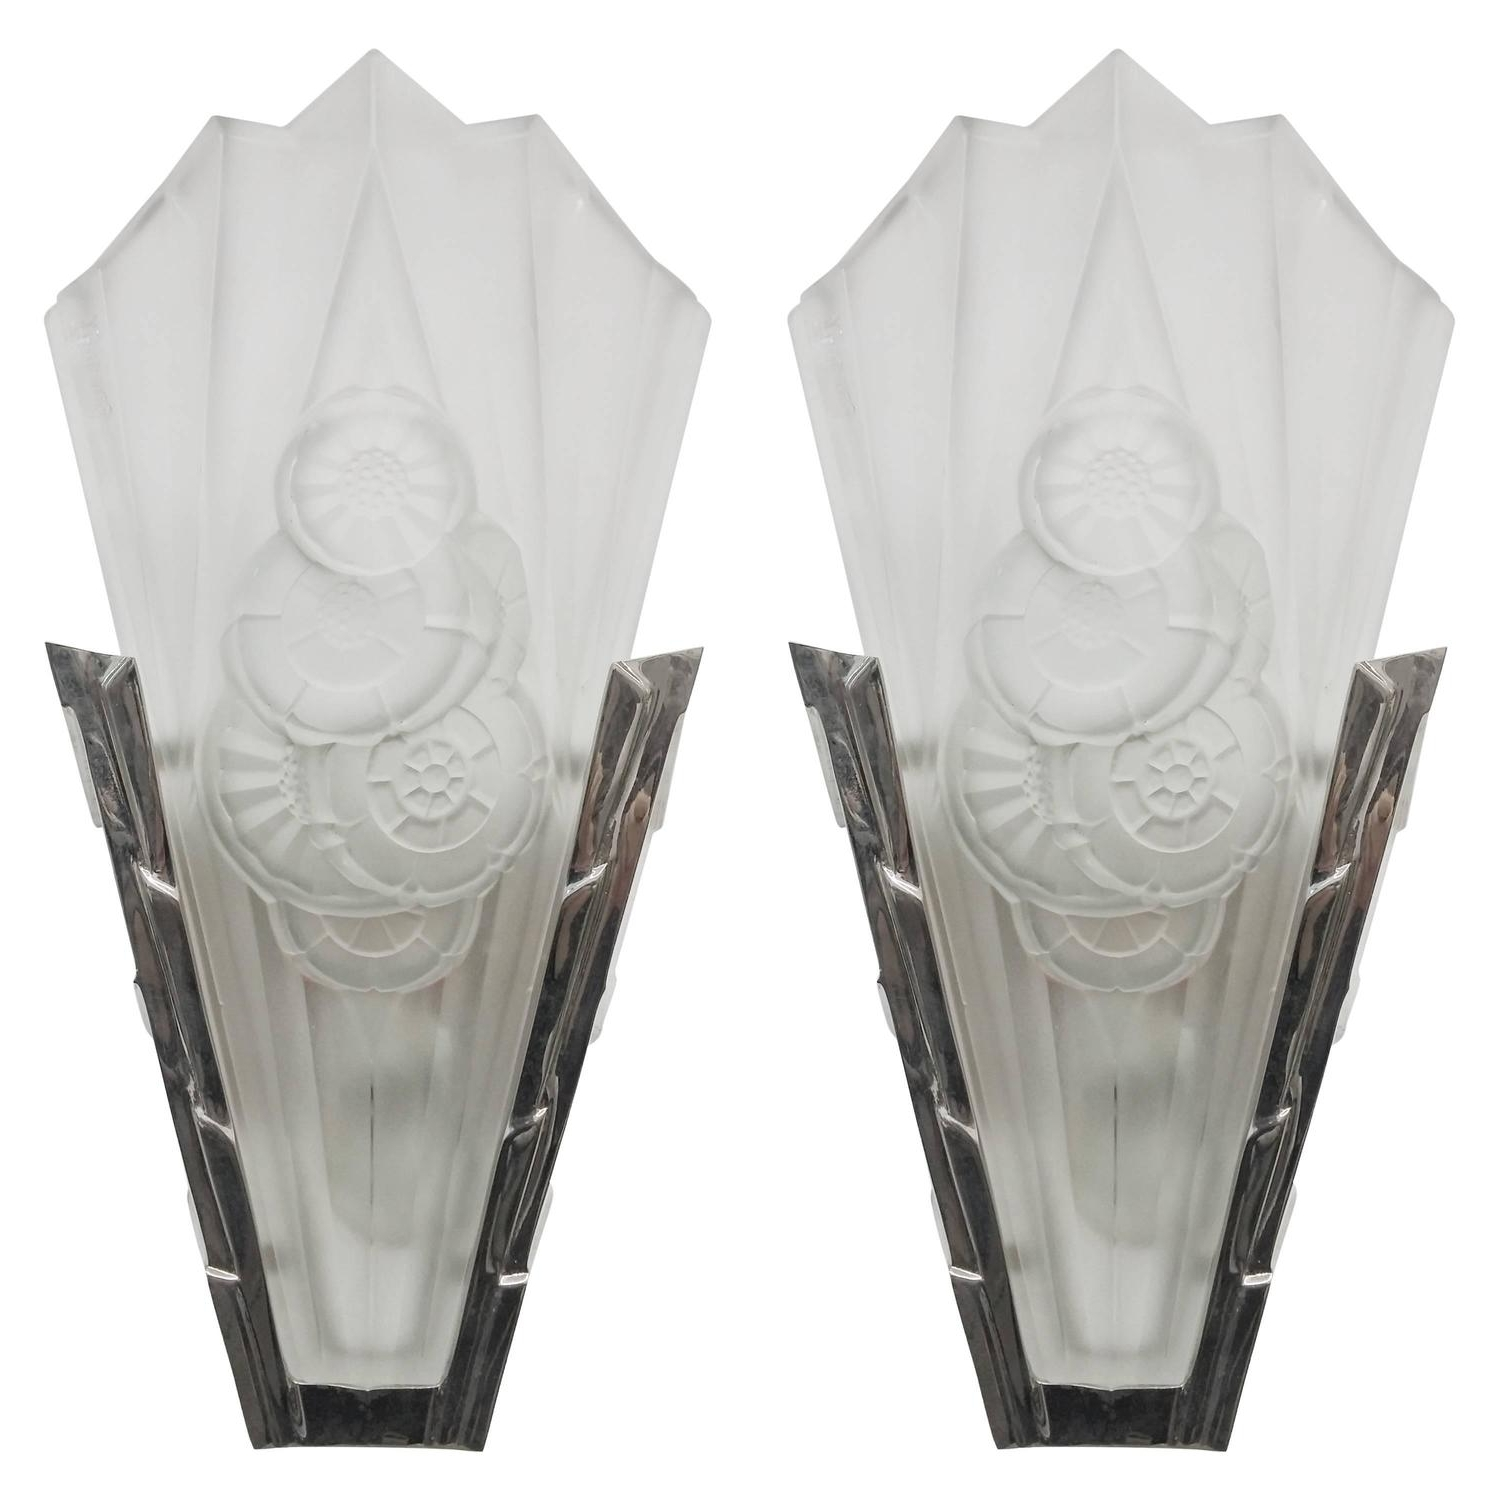 2017 Art Deco Wall Sconces With Regard To Pair Of French Art Deco Wall Sconces Signeddegue For Sale At 1stdibs (View 17 of 20)